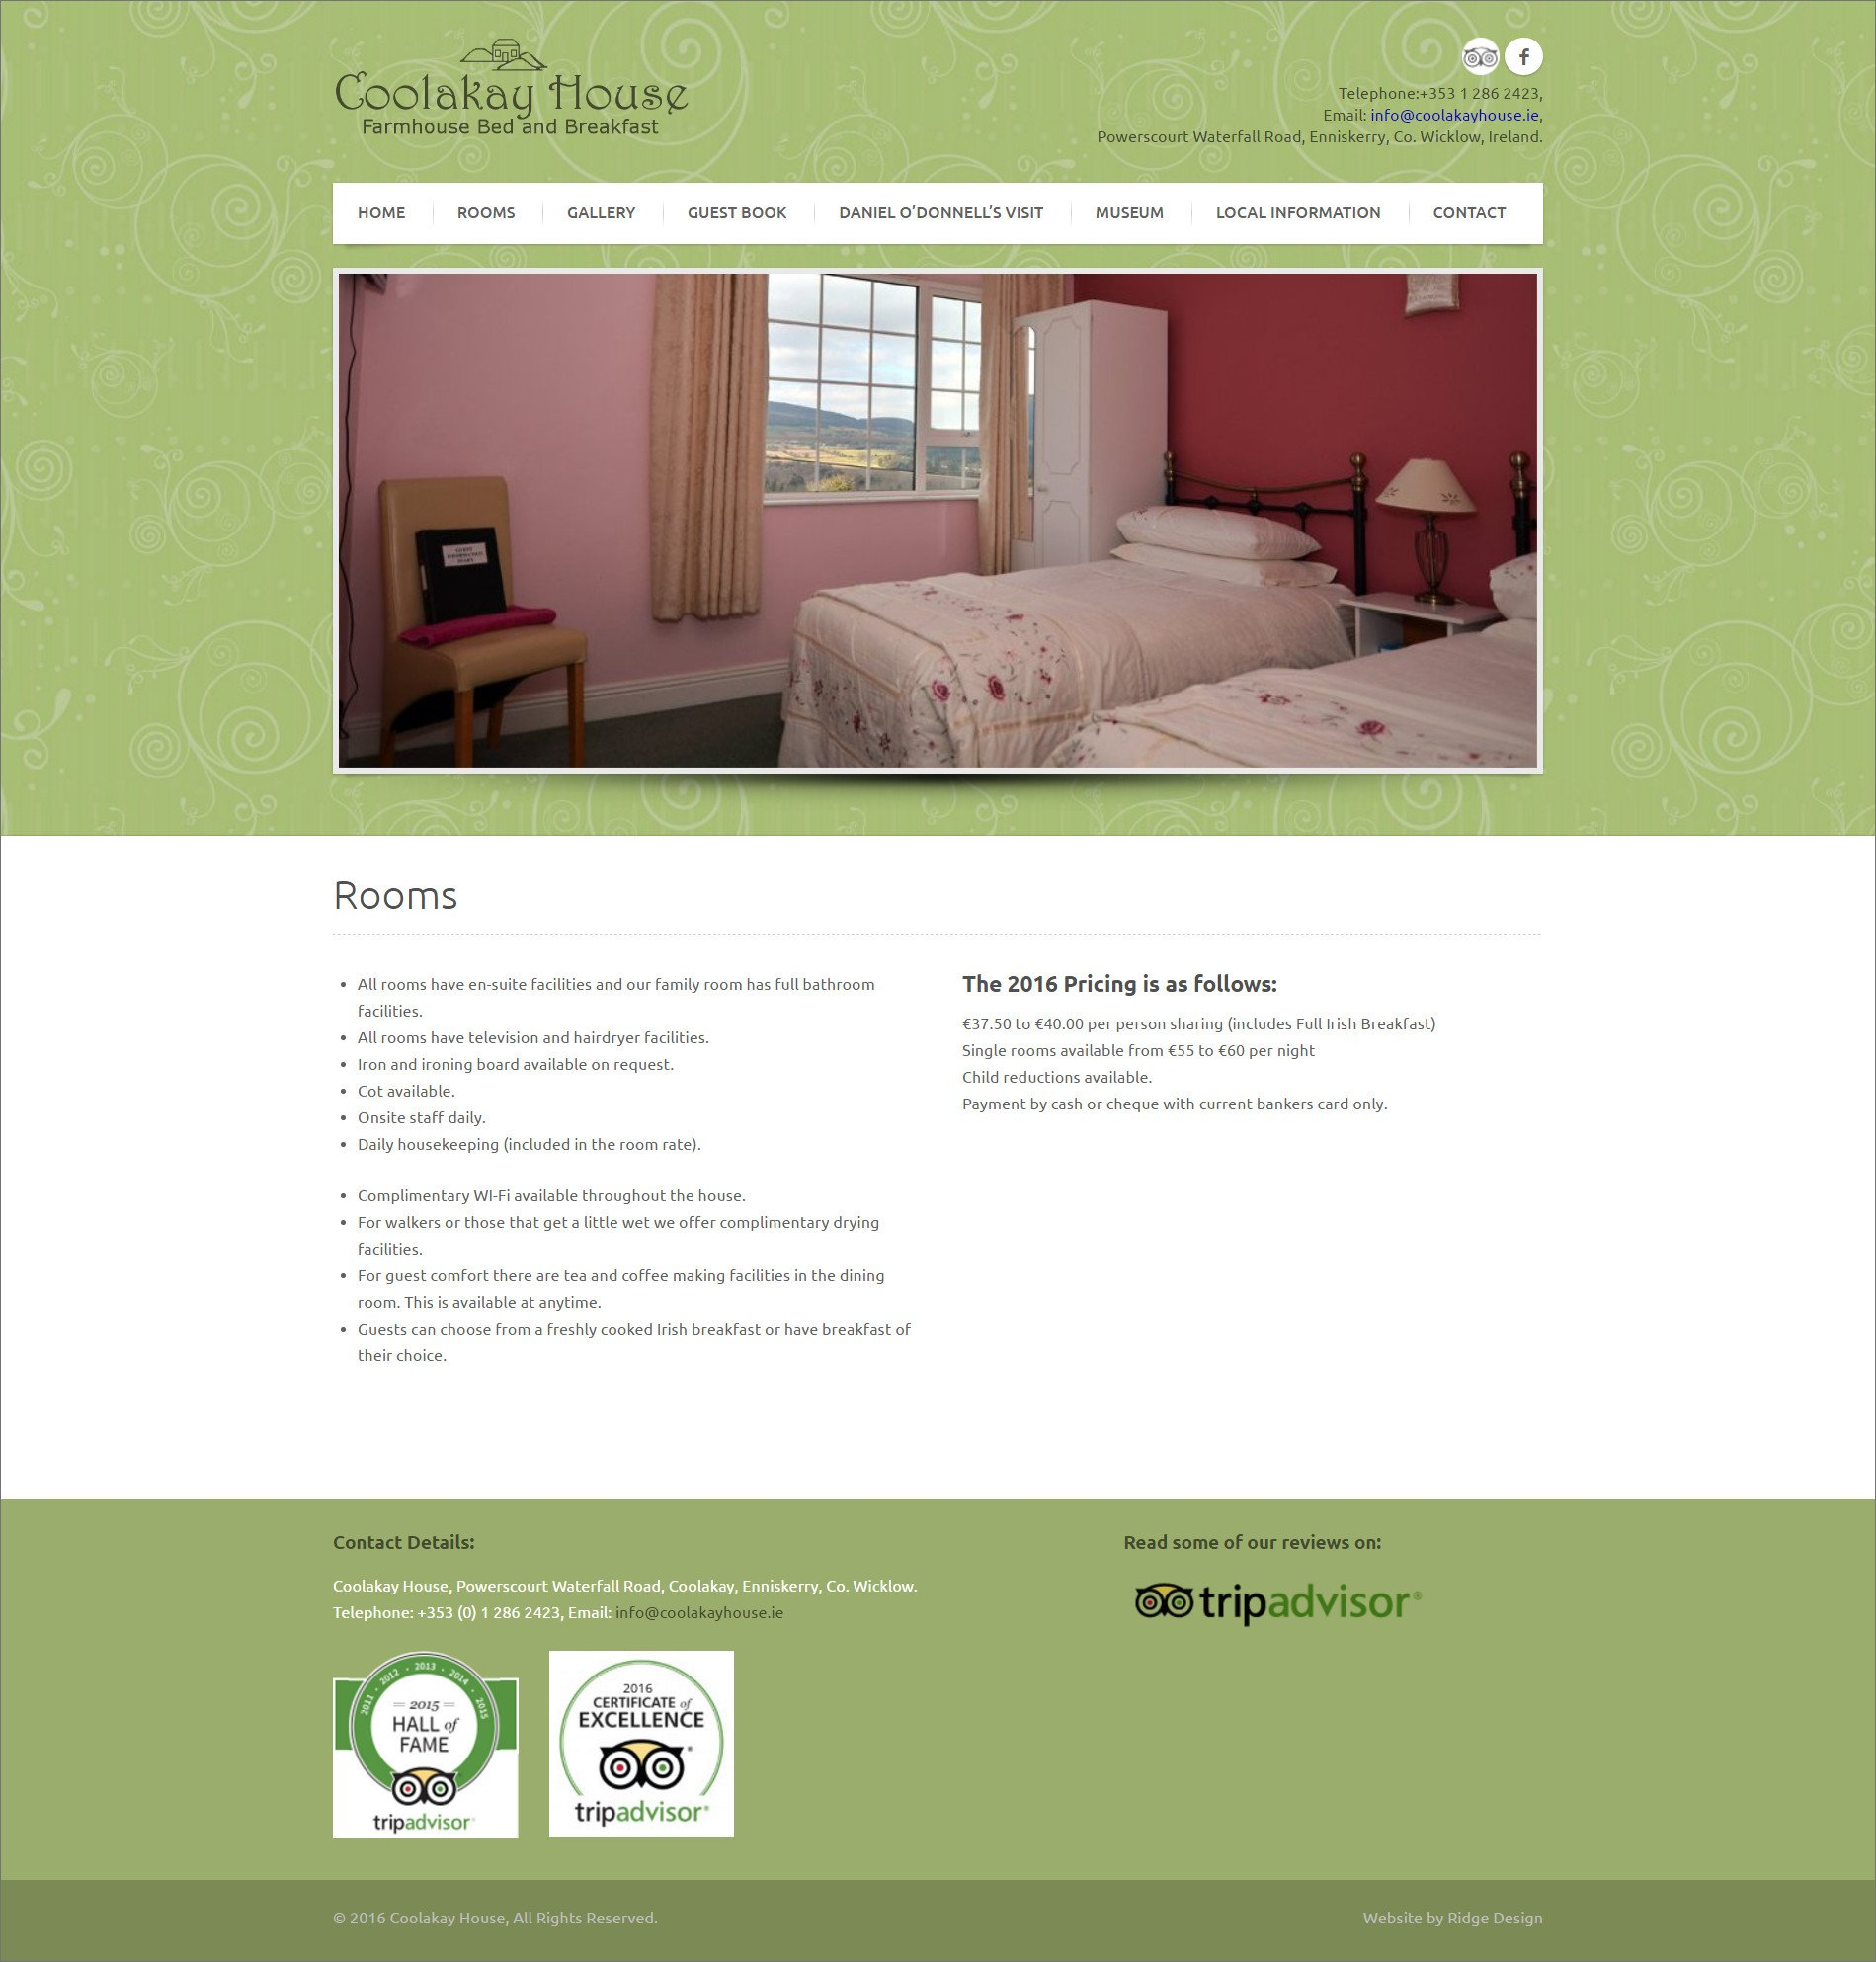 Website design for Coolakay House designed by Ridge Design Rooms page visual